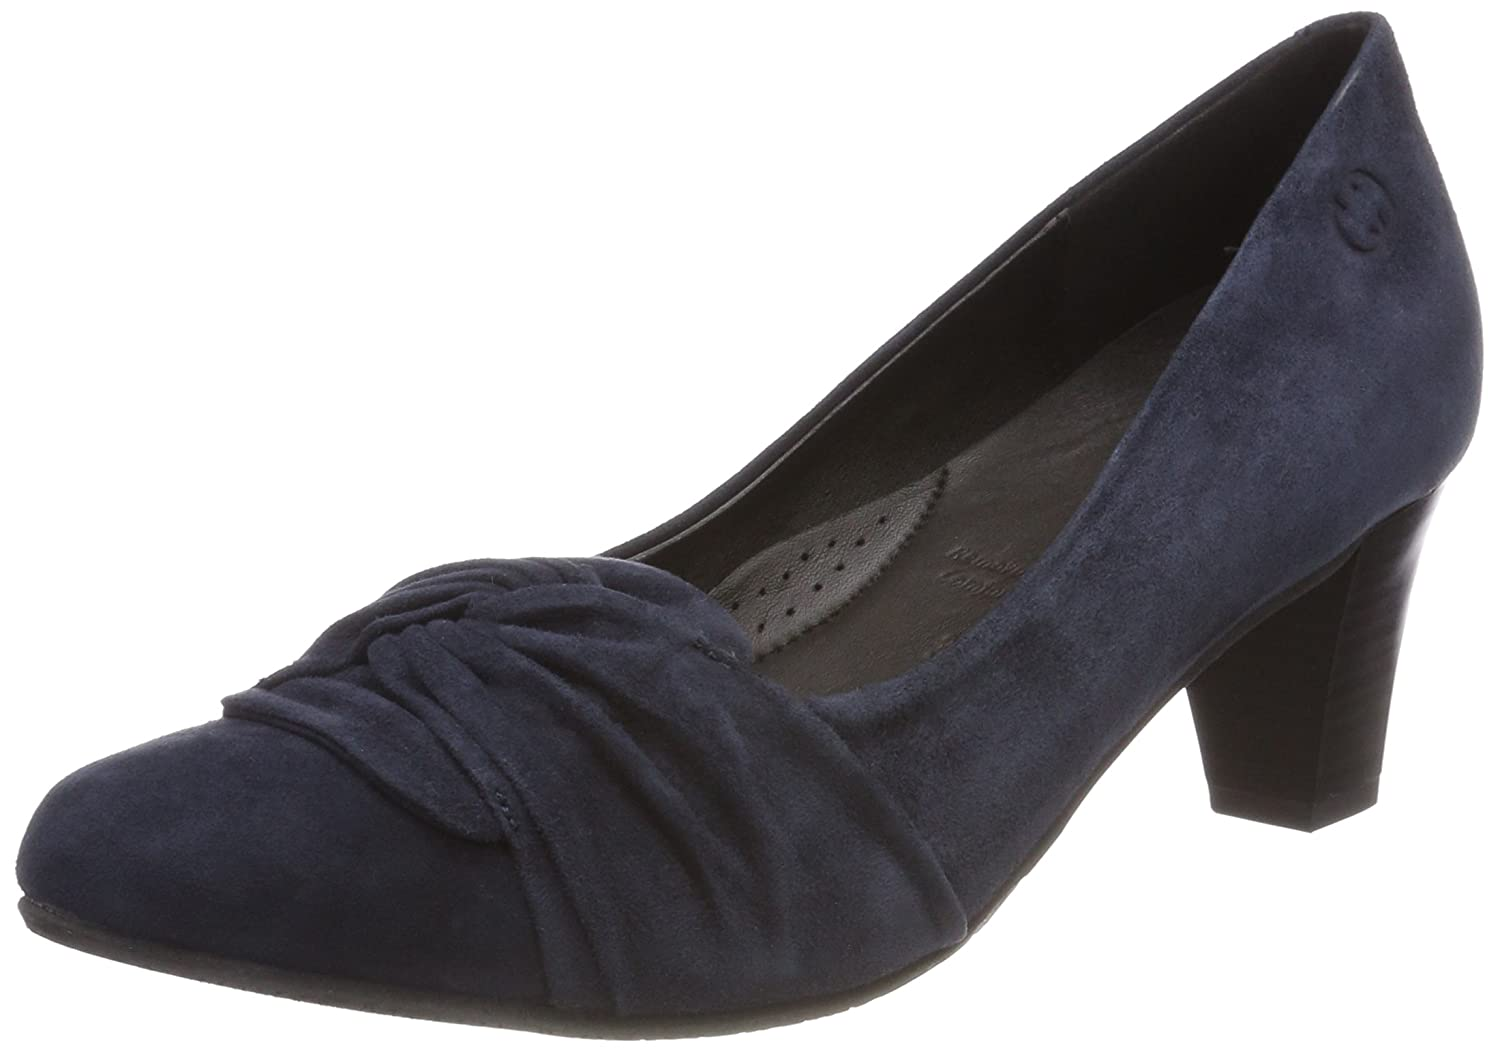 Gerry Weber schuhe Damen Lena 10 Pumps